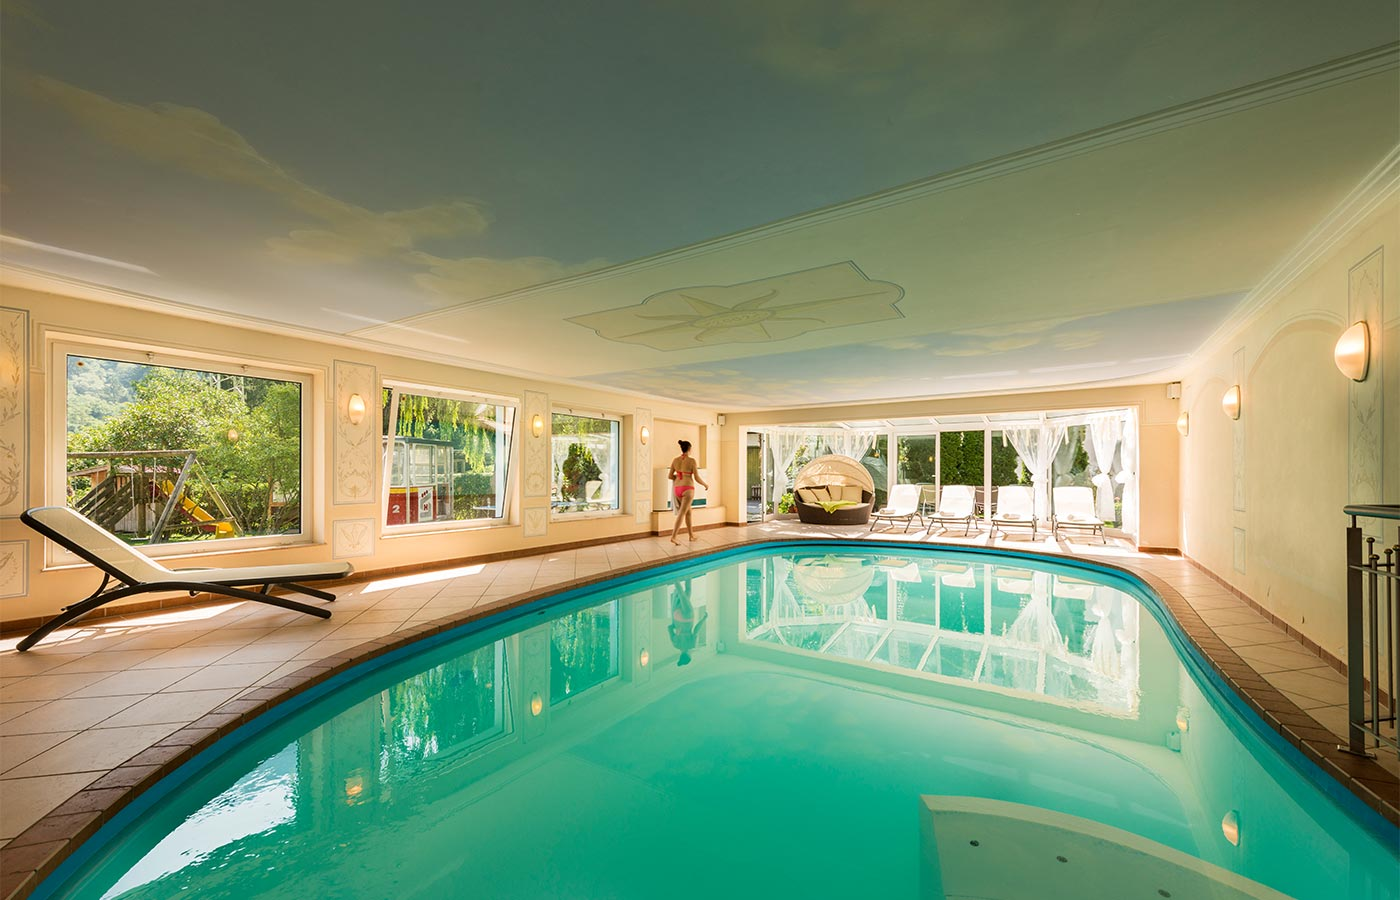 Chlorine free indoor swimming pool